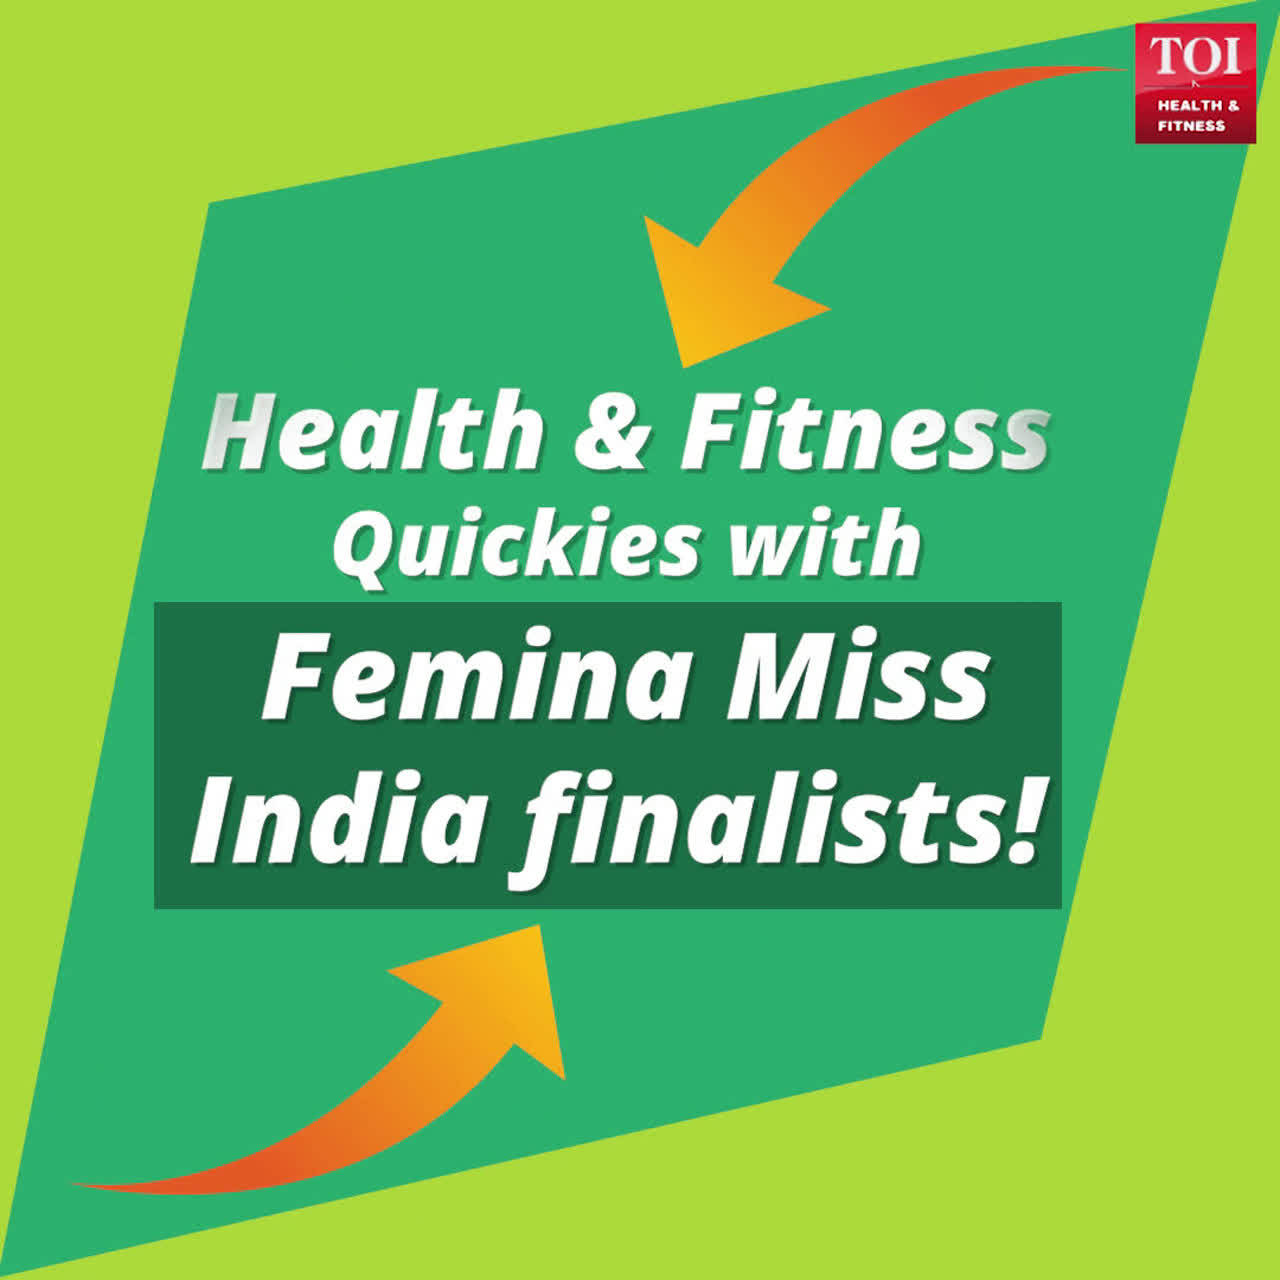 This is how Femina Miss India finalists maintain their fit bodies!